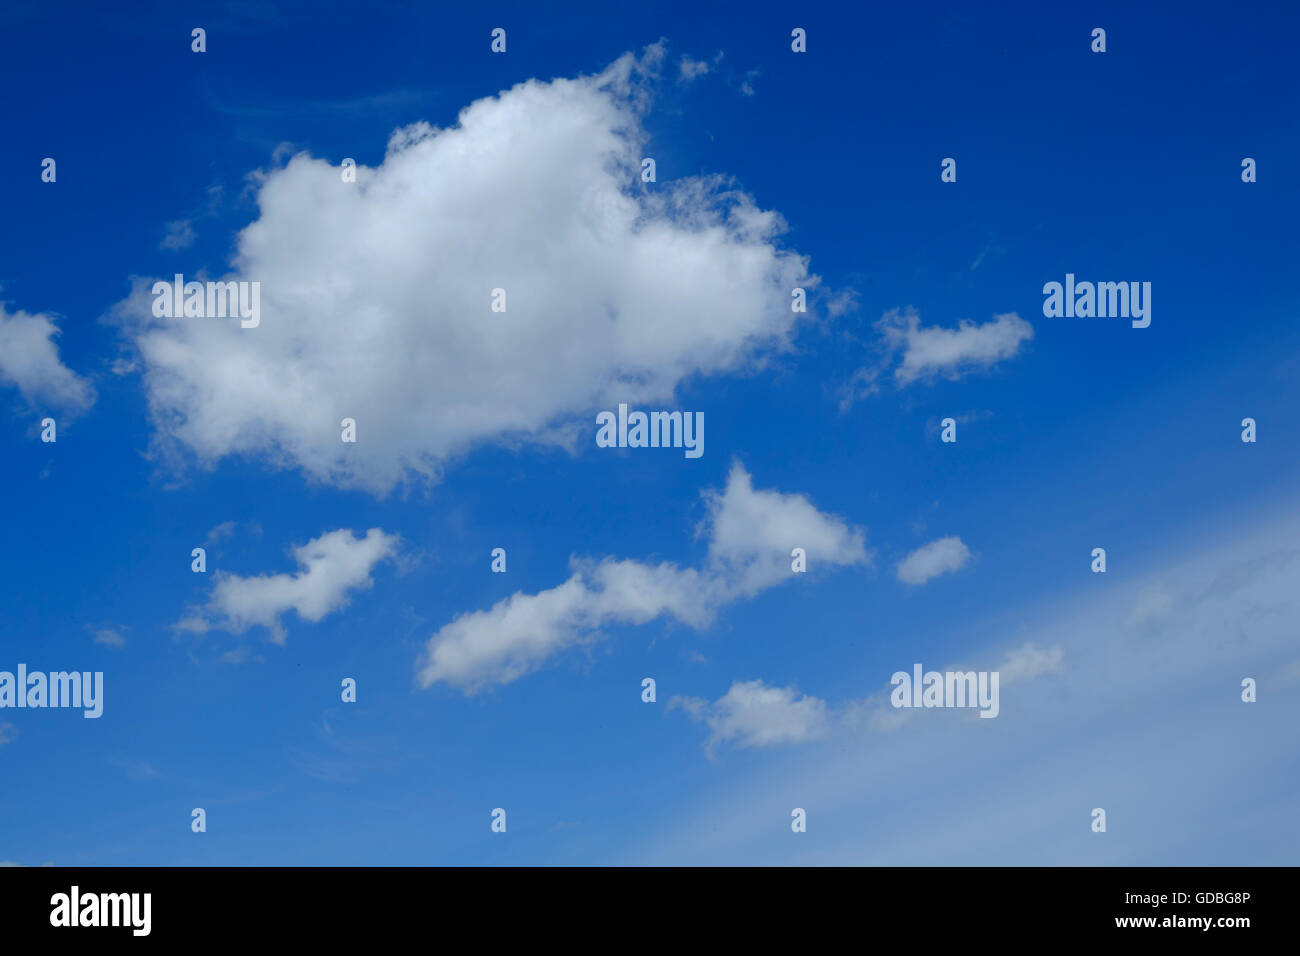 Fluffy clouds in a blue sky - Stock Image